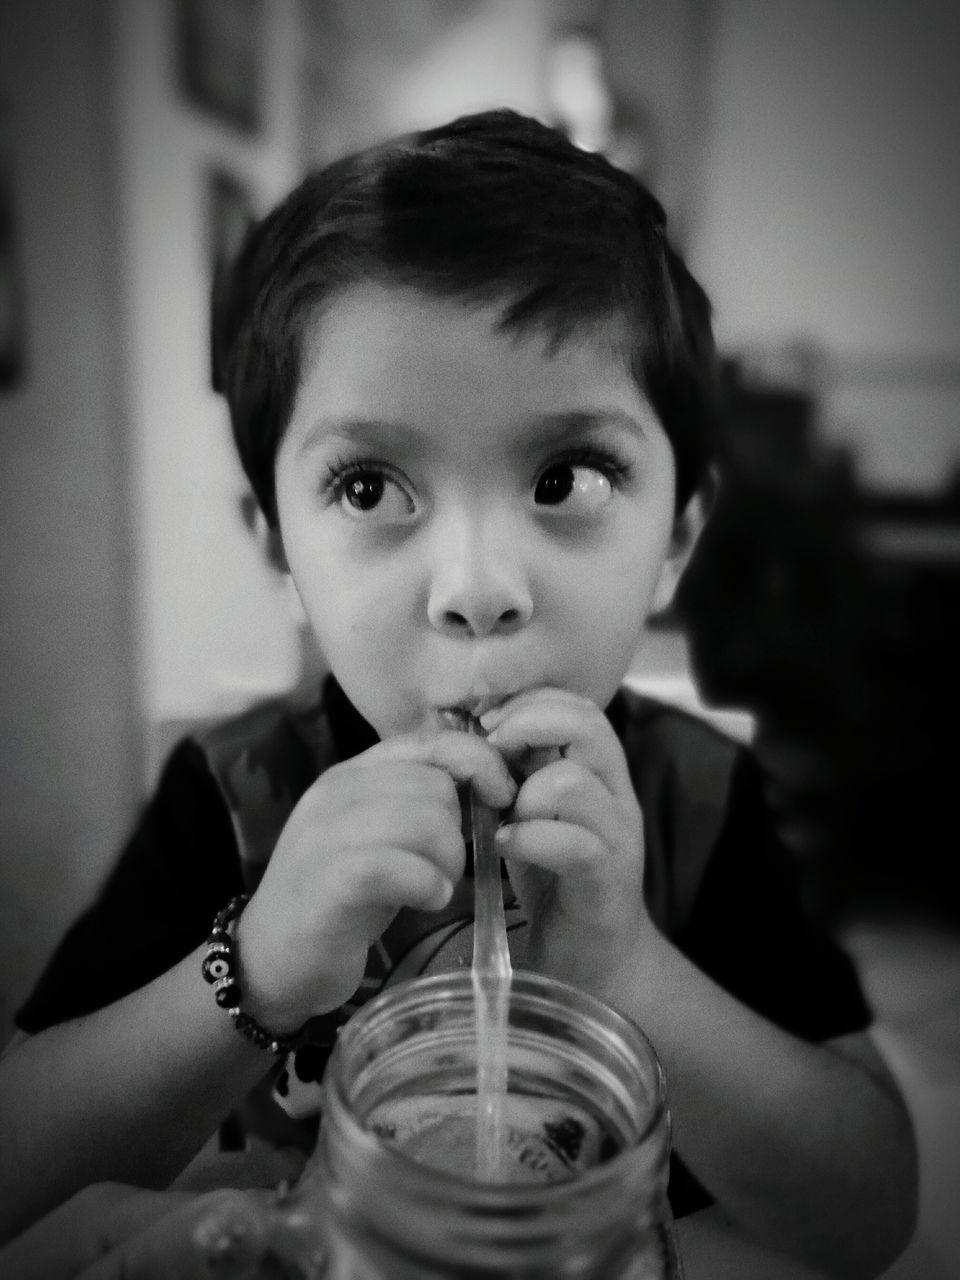 Boy Sipping Drink At Home